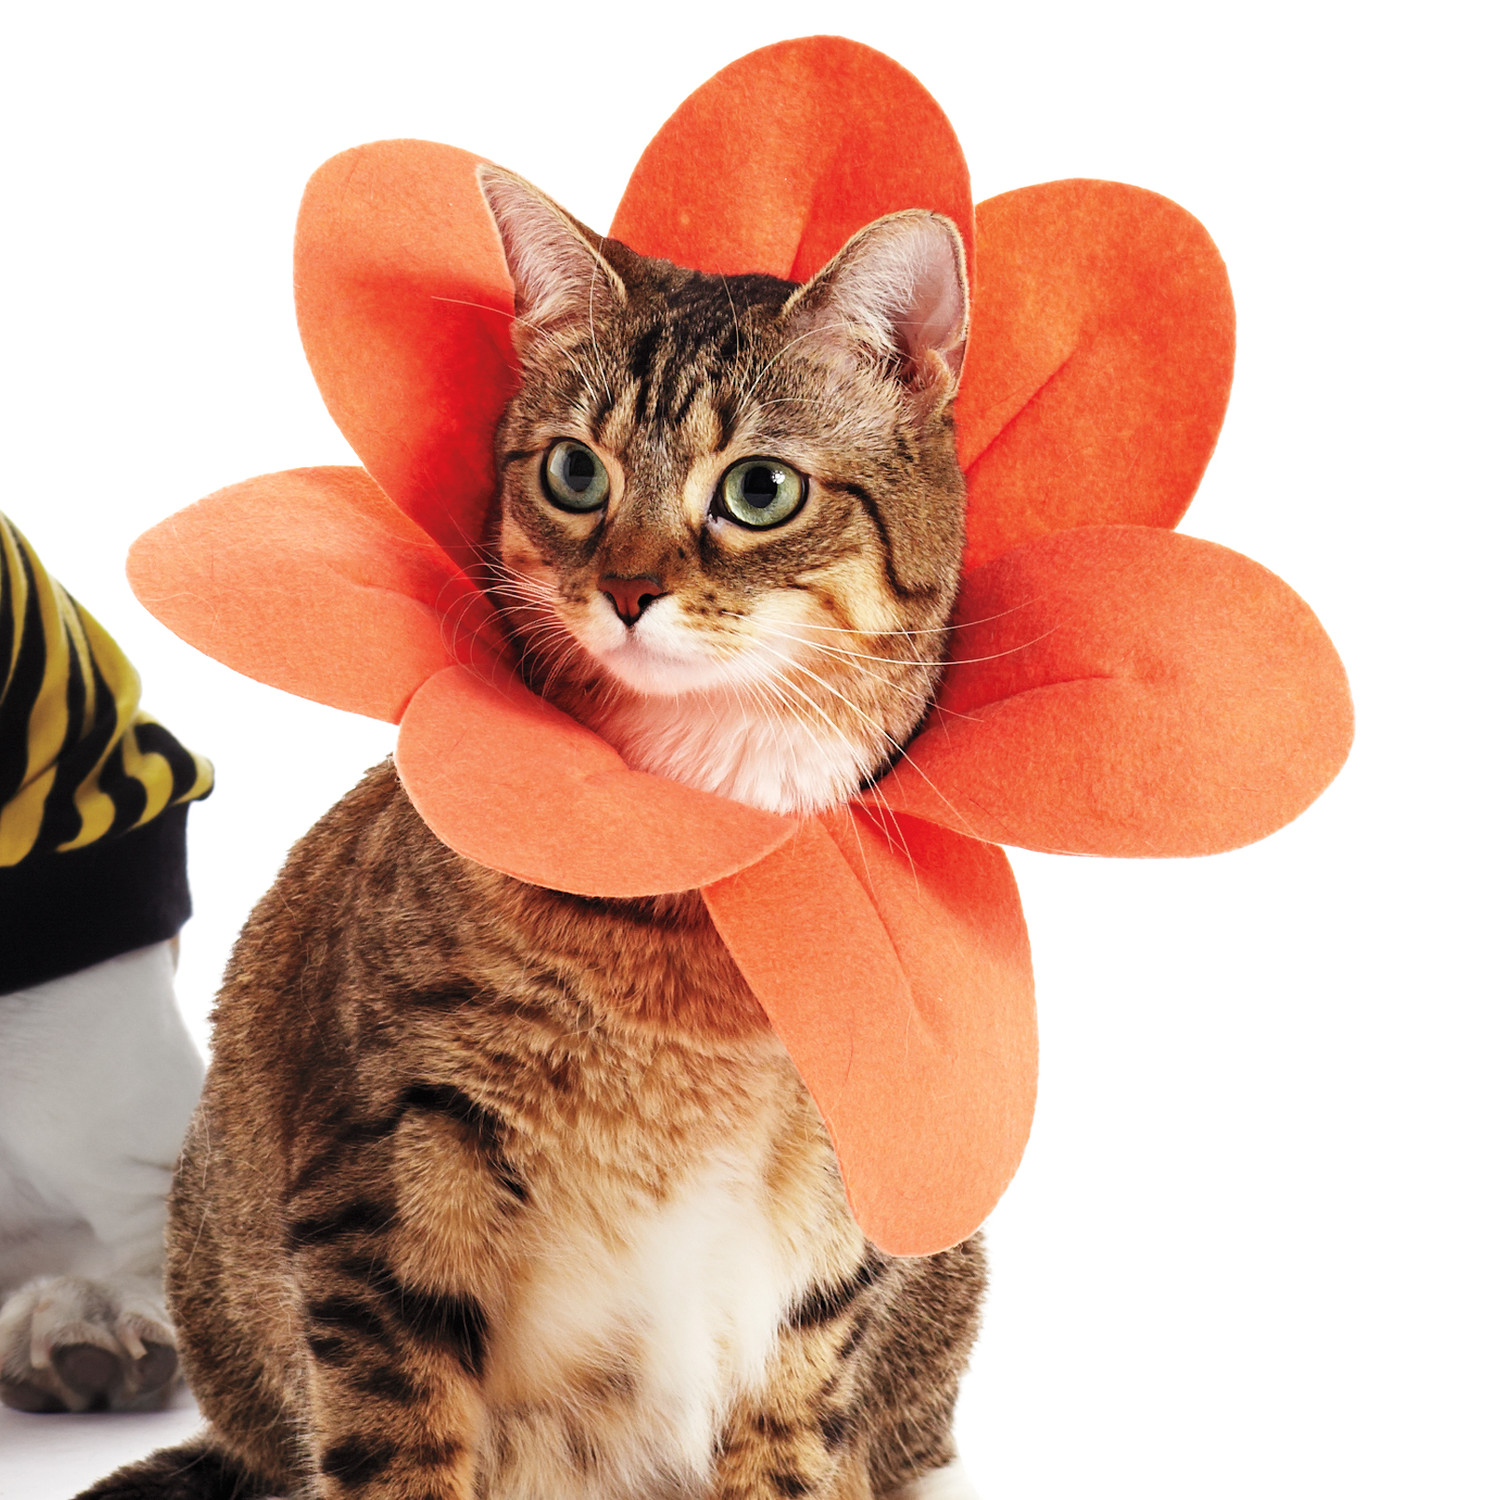 1) Flower Turn your pet into a beautiful flower with this simple costume!  sc 1 st  Sandstone Animal Hospital & 31 DIY Halloween Pet Costumes | Sandstone Animal Hospital